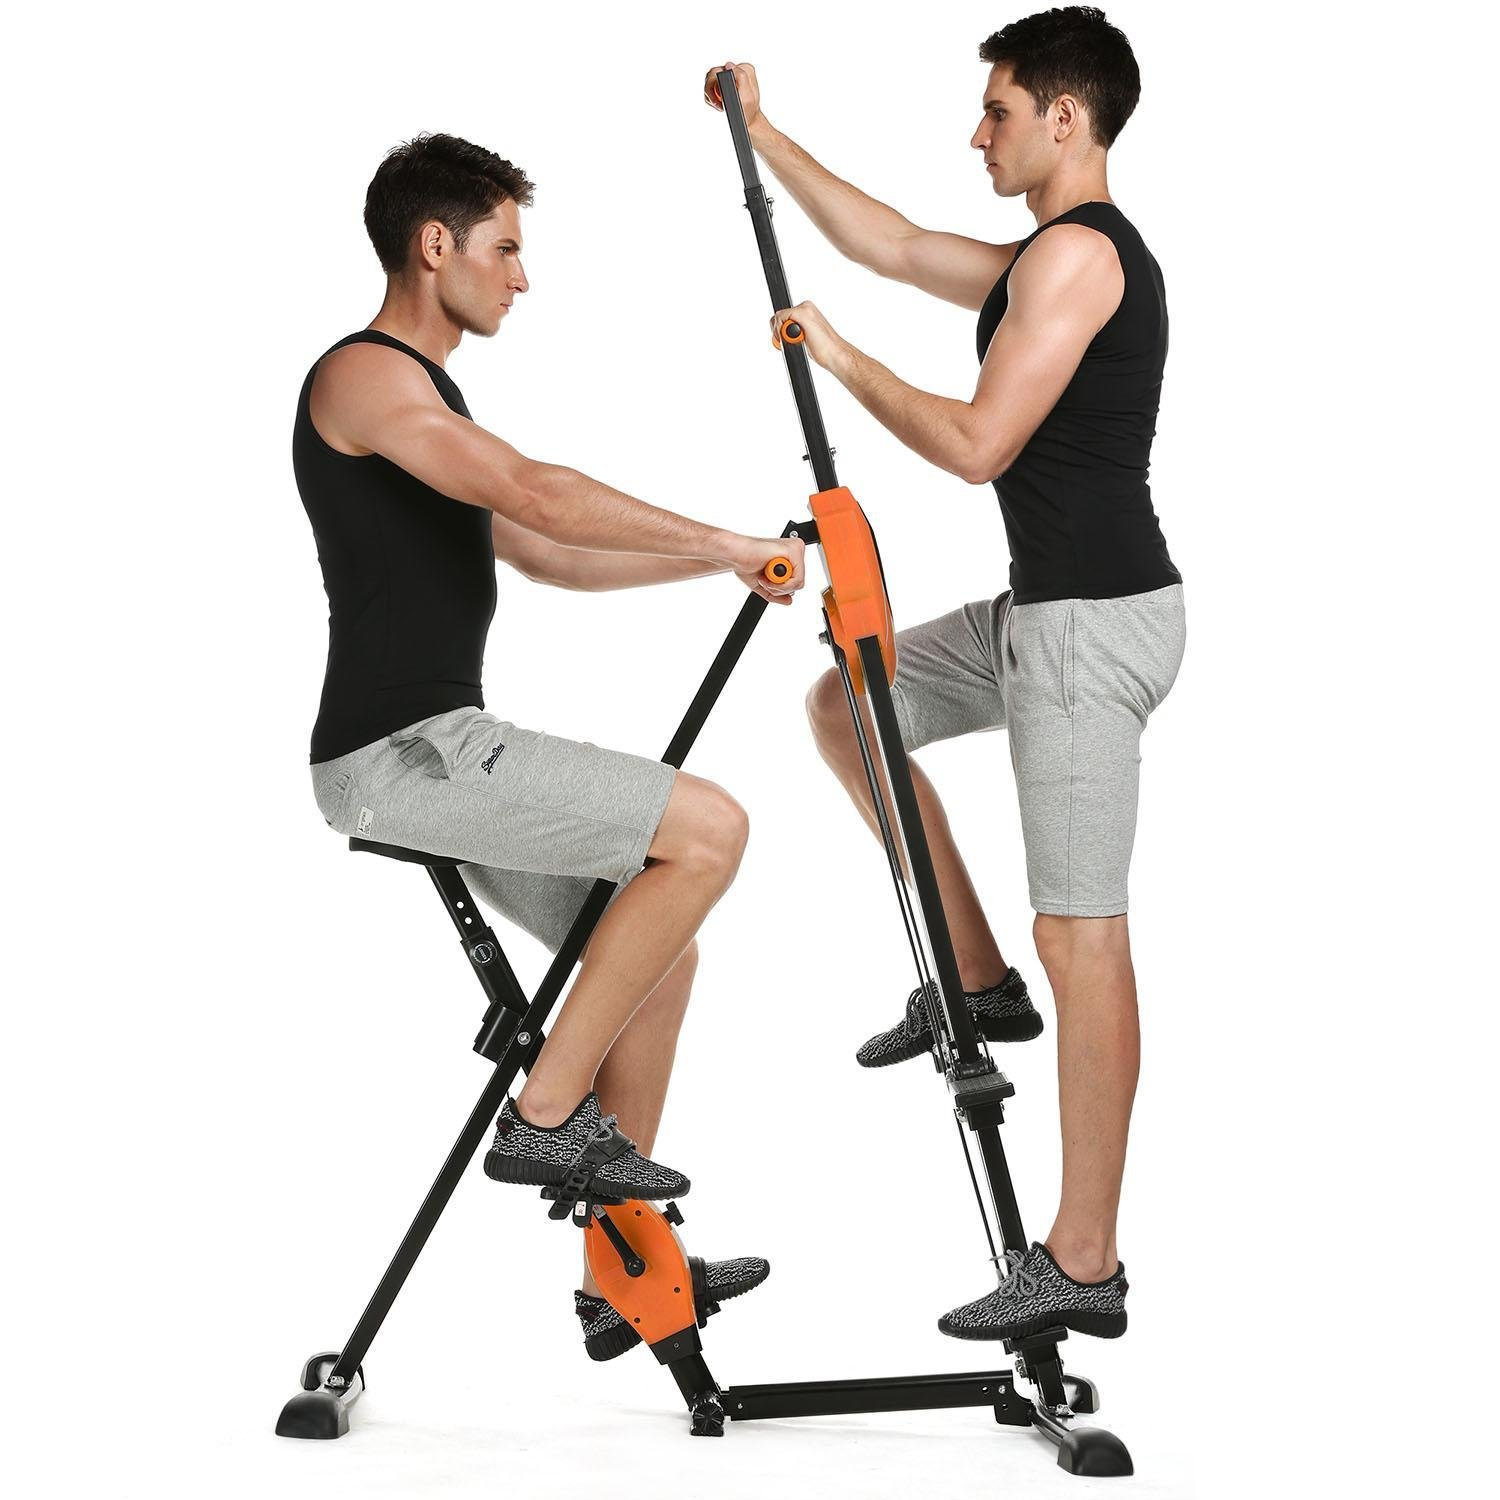 Loveje Vertical Climber Folding Exercise Climbing Machine, Exercise Equipment Climber for Home Gym, Exercise Bike for Home Body Trainer (US Stock)